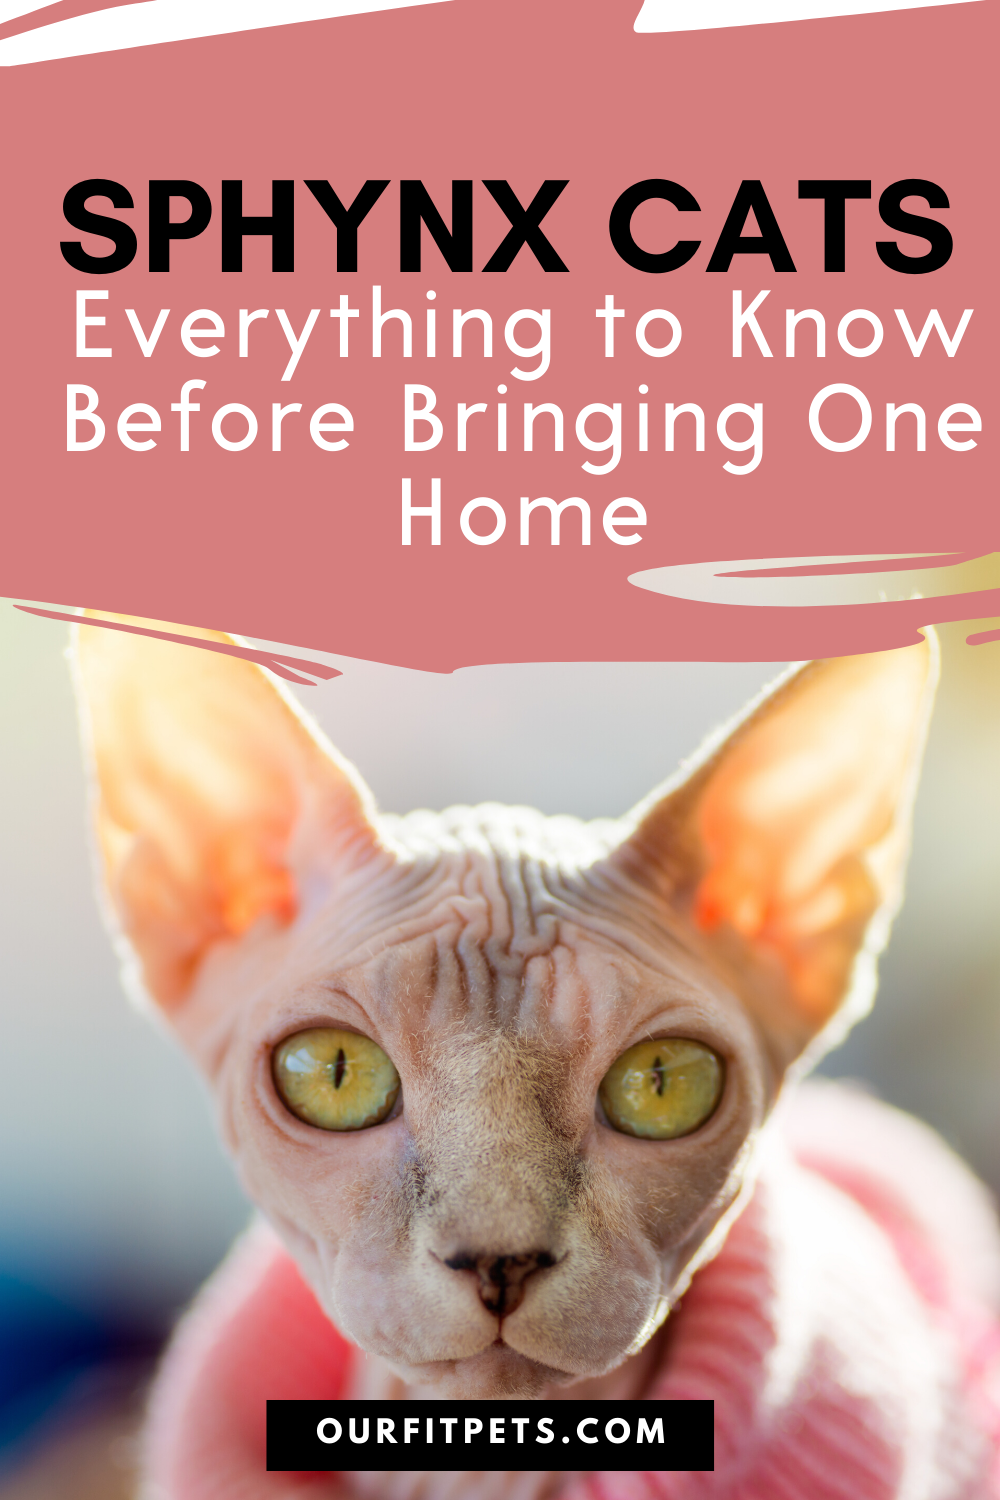 Sphynx Cats Everything To Know Before Bringing One Home Our Fit Pets In 2020 Sphynx Cat Sphynx Hairless Cat